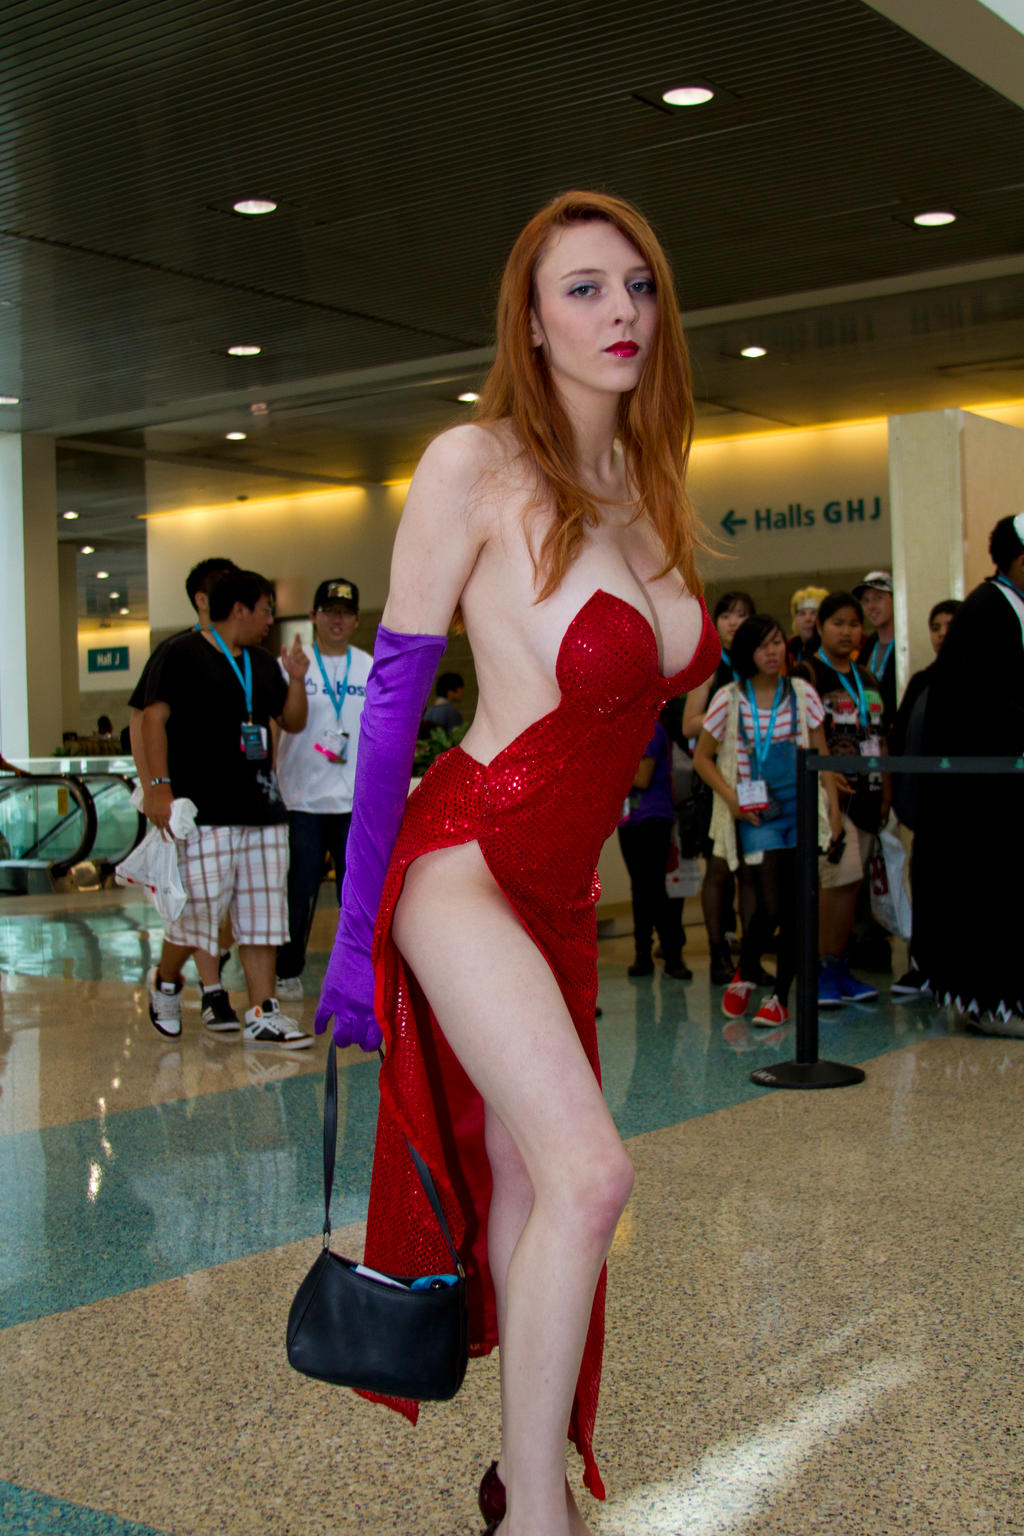 Anime Expo 12' 014 by ReblRC61